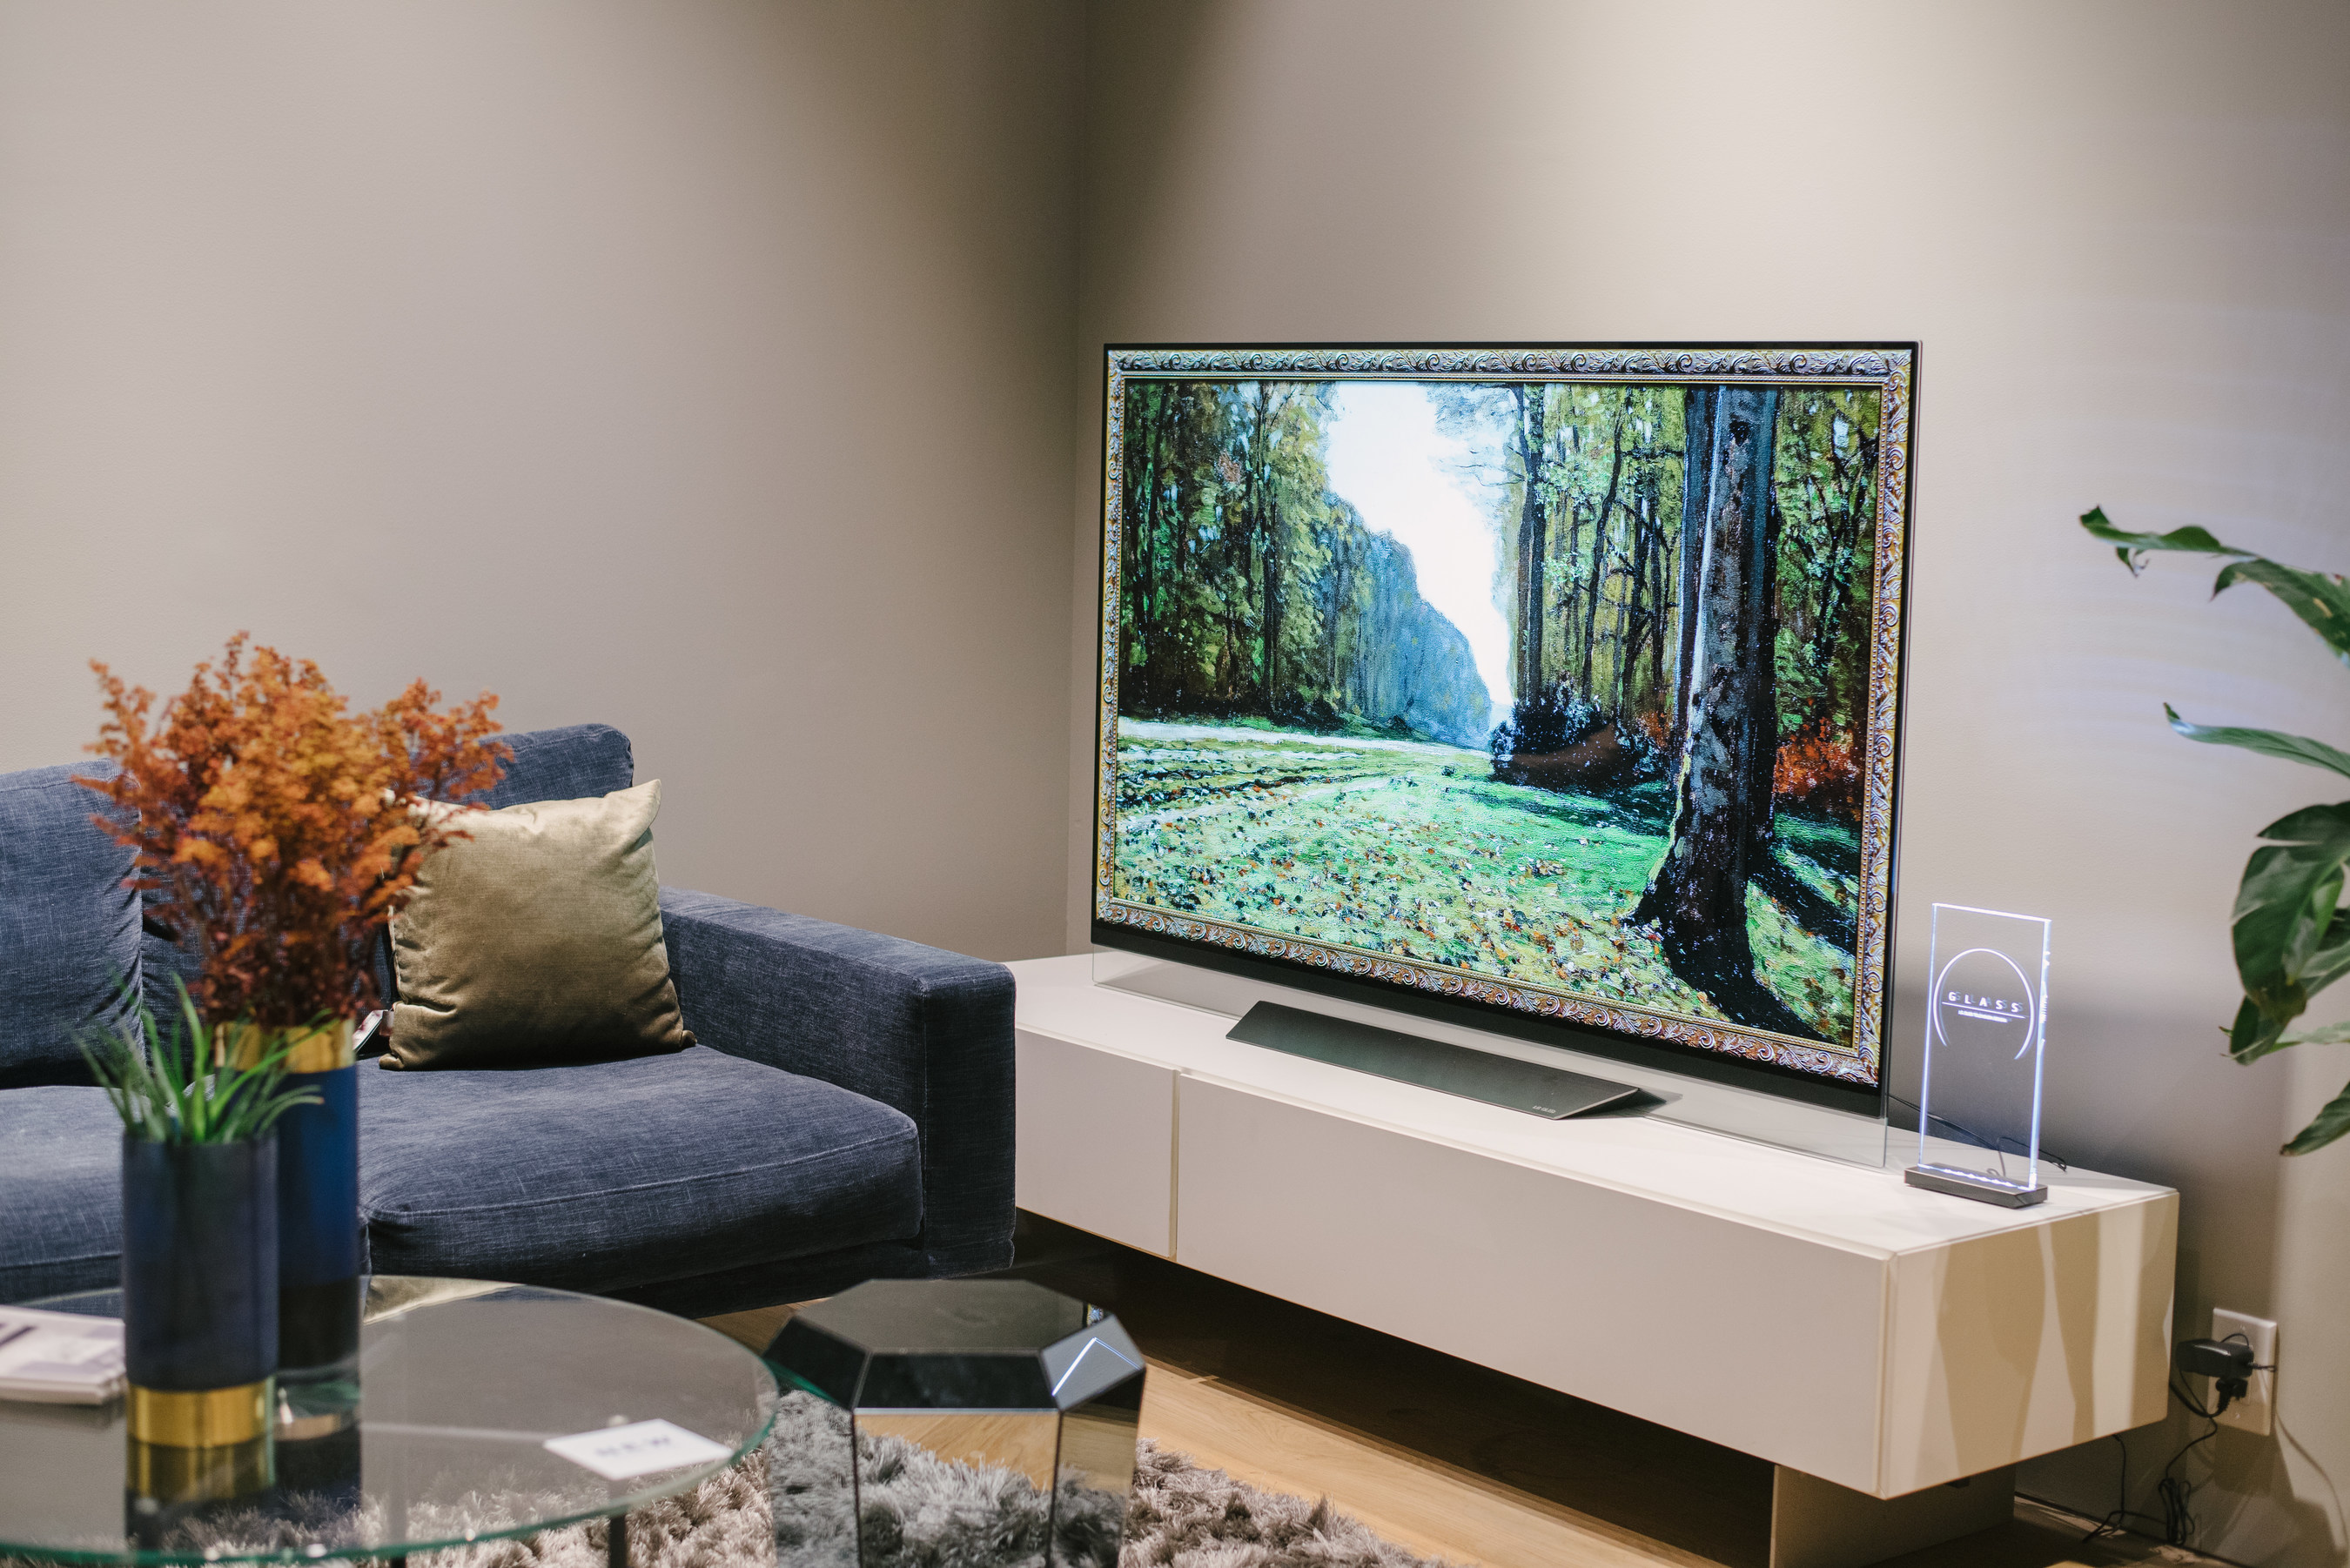 Coveted Top-Tier Award Recognizes Innovative 'GLASS' Campaign Integrating Iconic Global Furniture Franchise and Critically Acclaimed LG OLED TVs